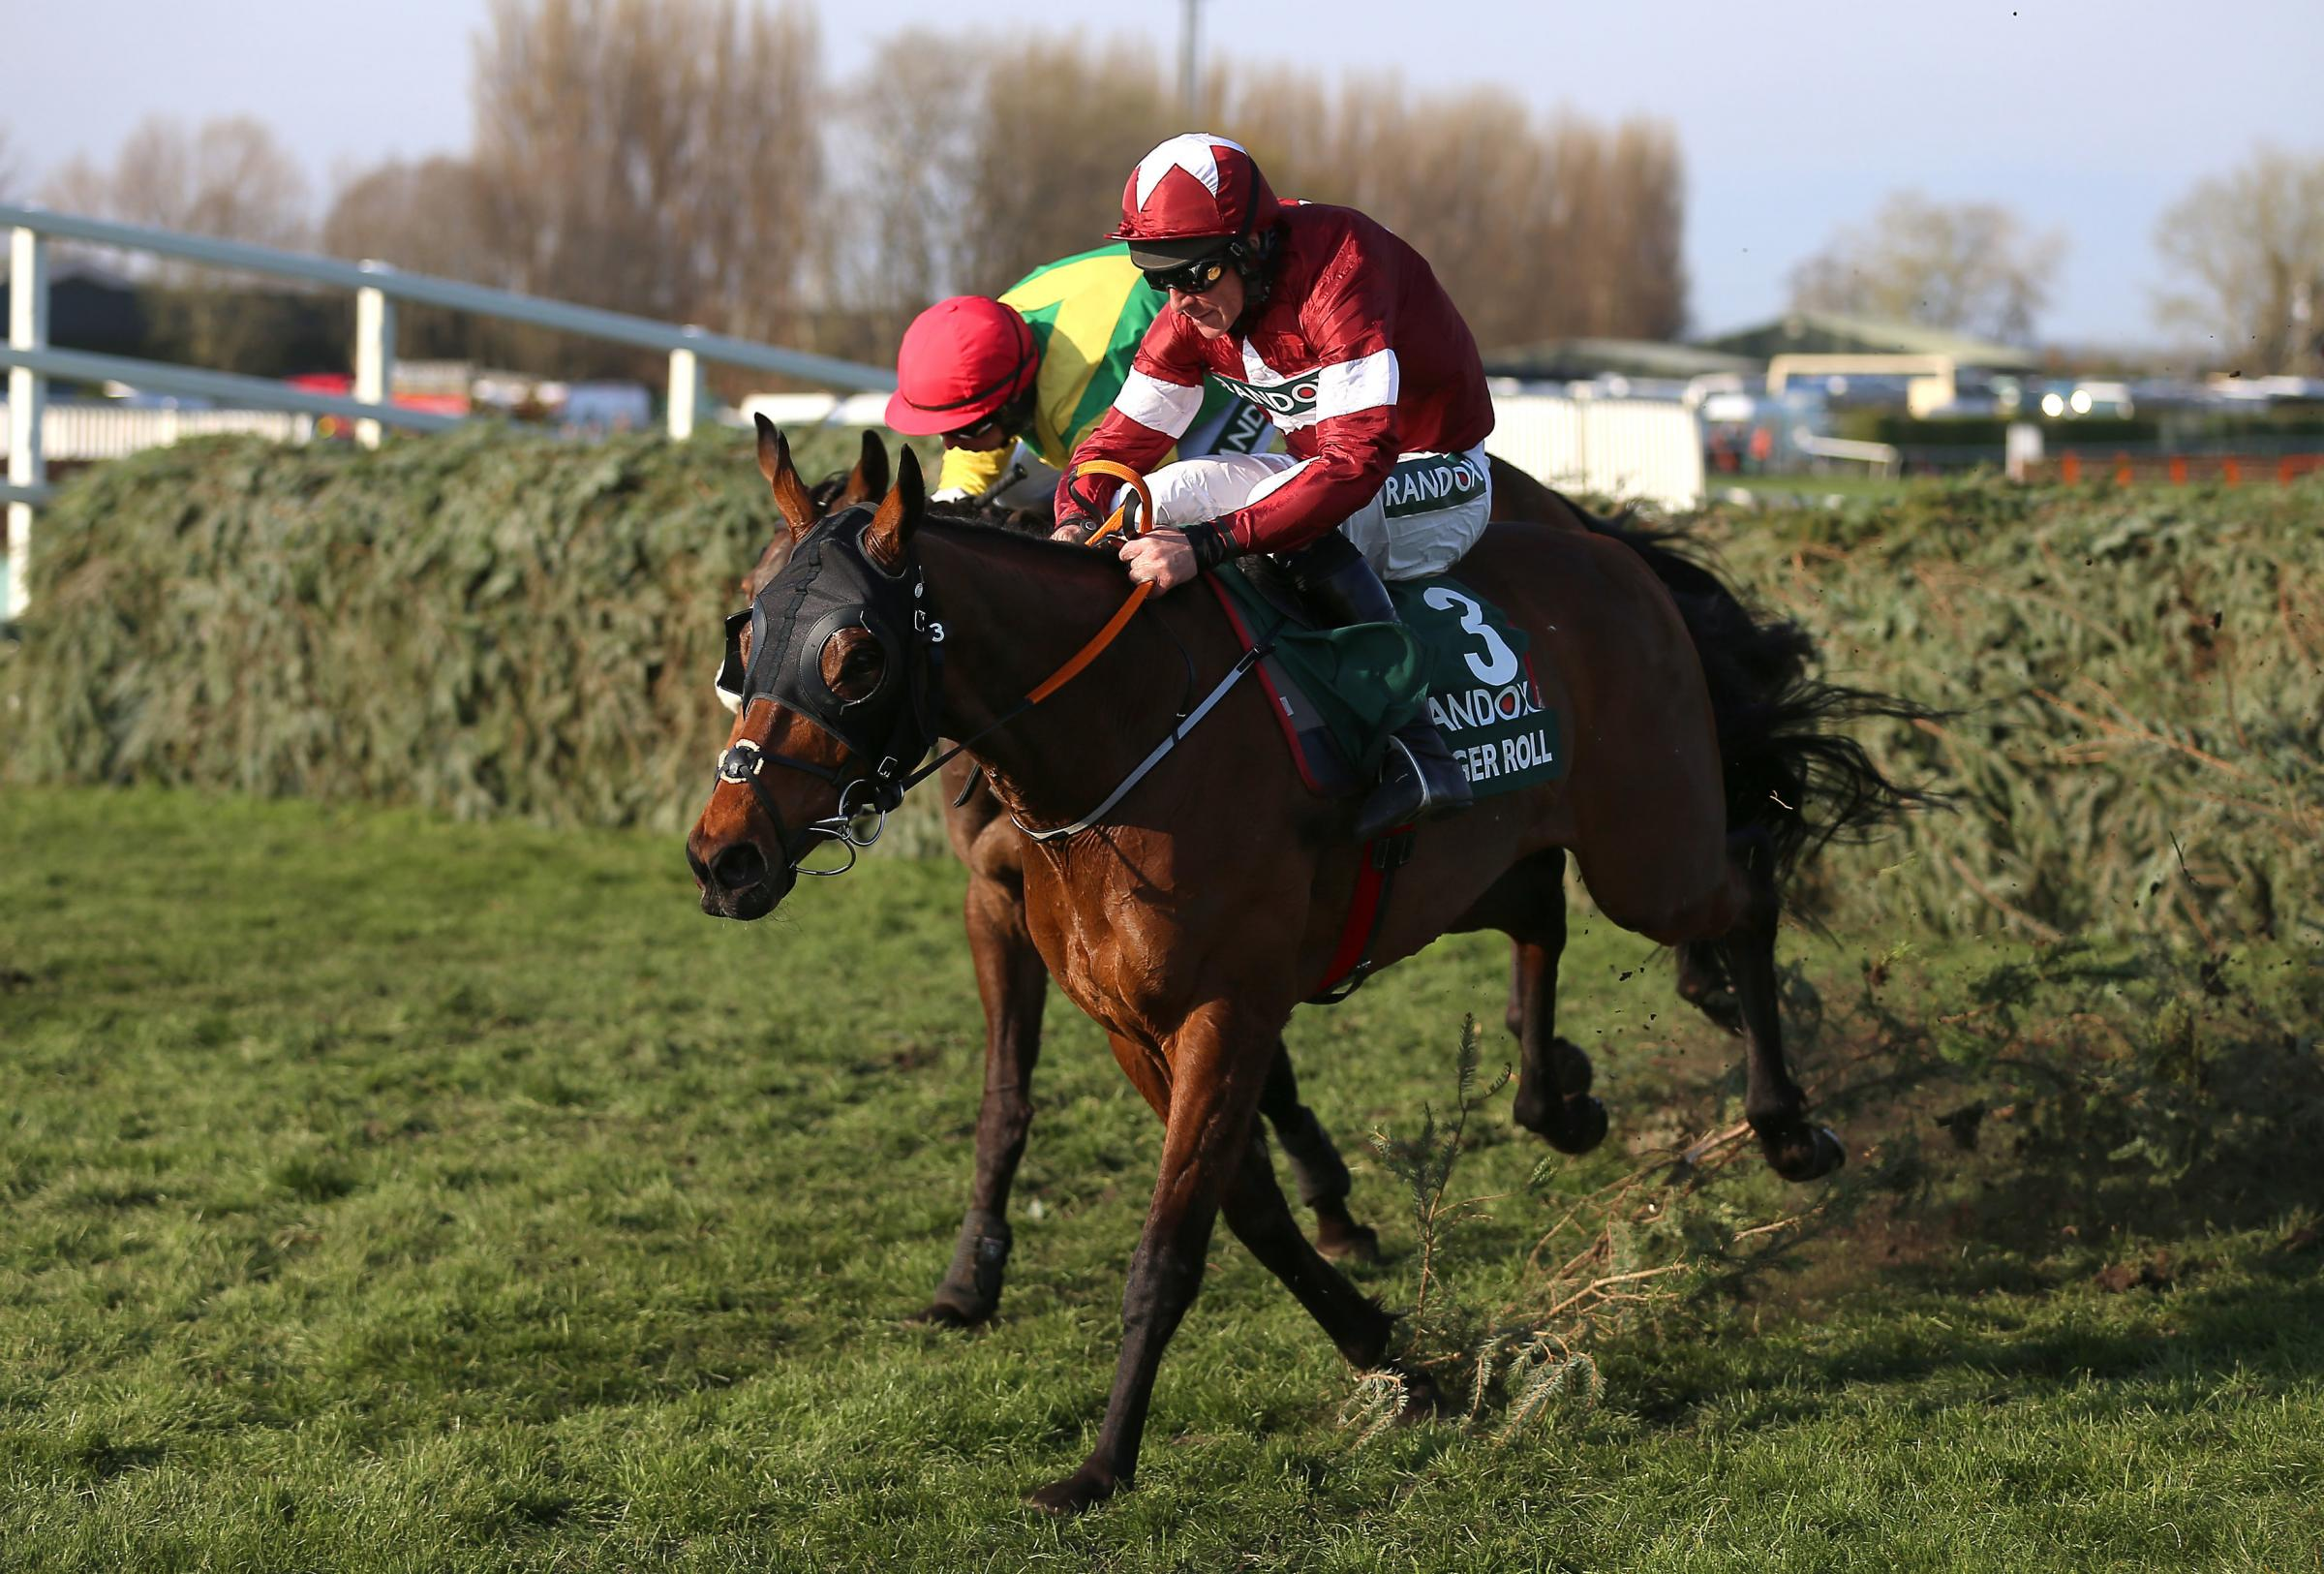 Tiger Roll ridden by Jockey Davy Russell on the way to winning the Randox Health Grand National Handicap Chase during Grand National Day of the 2019 Randox Health Grand National Festival at Aintree Racecourse.  Picture: PA